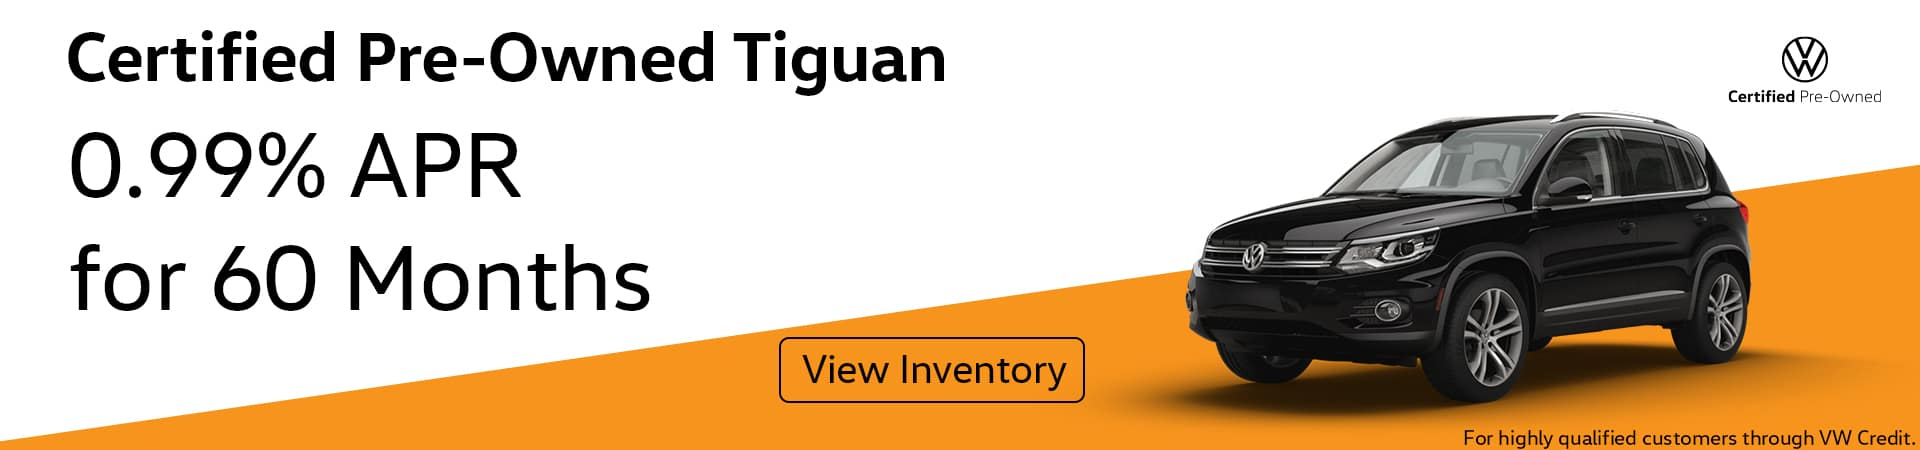 0.99% APR for 60 months on CPO Tiguan